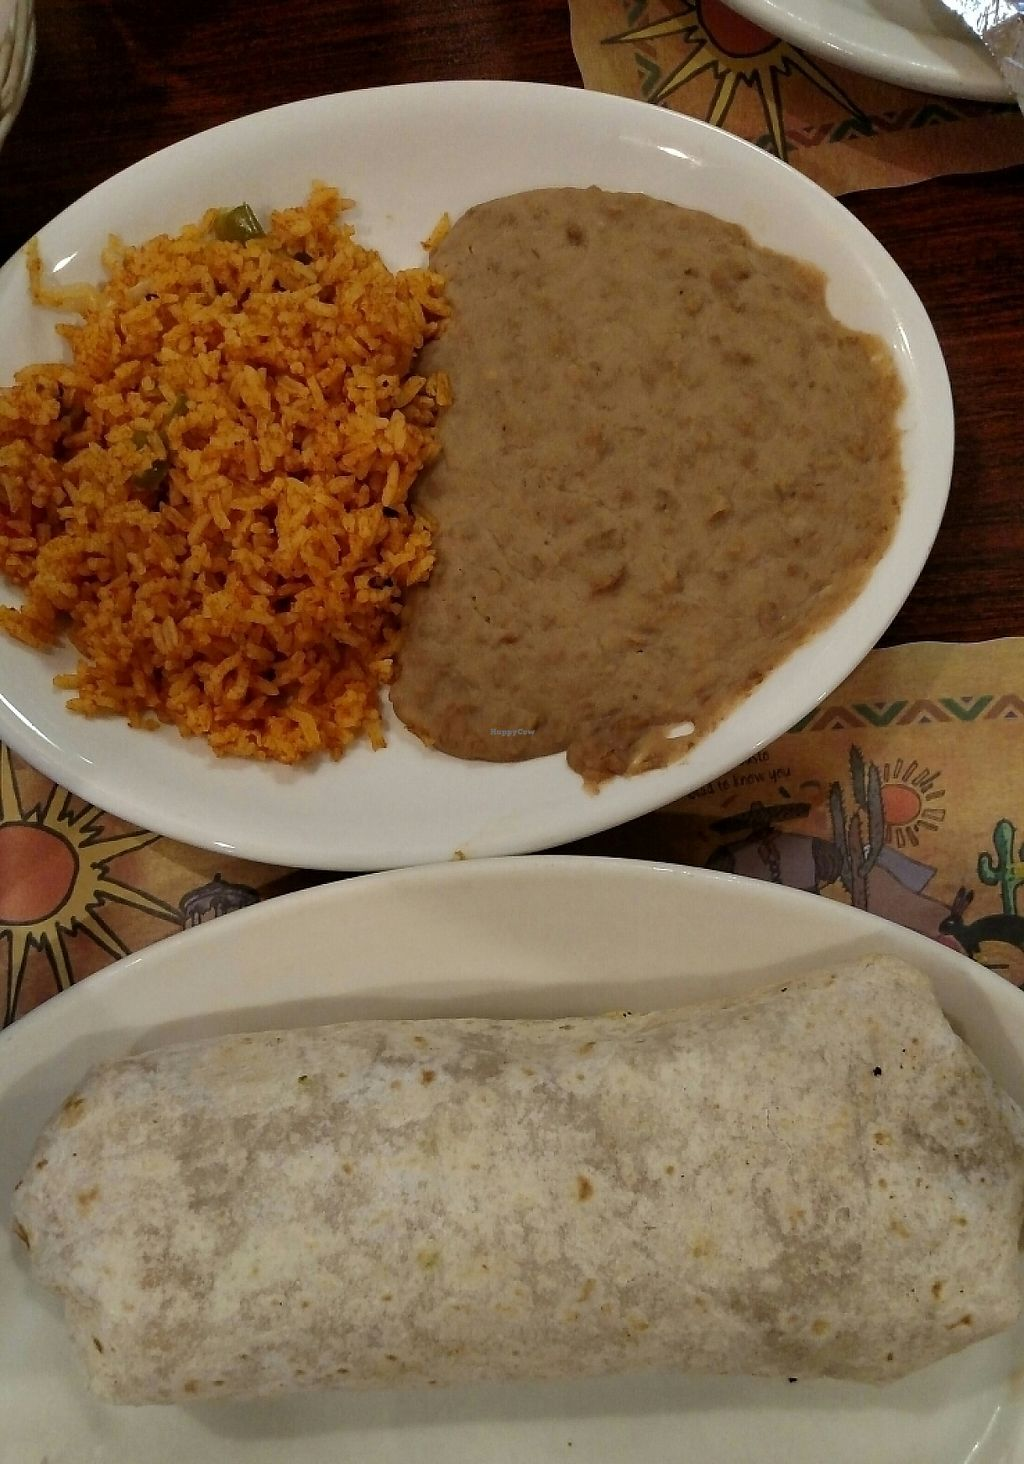 "Photo of La Quesadilla Mexican Grill  by <a href=""/members/profile/RosieTheVegan"">RosieTheVegan</a> <br/>Veggie Burrito with rice and beans.  Vegan options are fabulous!  It is so wonderful to find a Mexican restaurant that doesn't use chicken stock or butter in the rice, doesn't use lard in the beans, and doesn't add milk or milk powder to the guacamole!  They also don't use peanut oil (if that is an allergy concern) <br/> May 19, 2017  - <a href='/contact/abuse/image/42789/260375'>Report</a>"